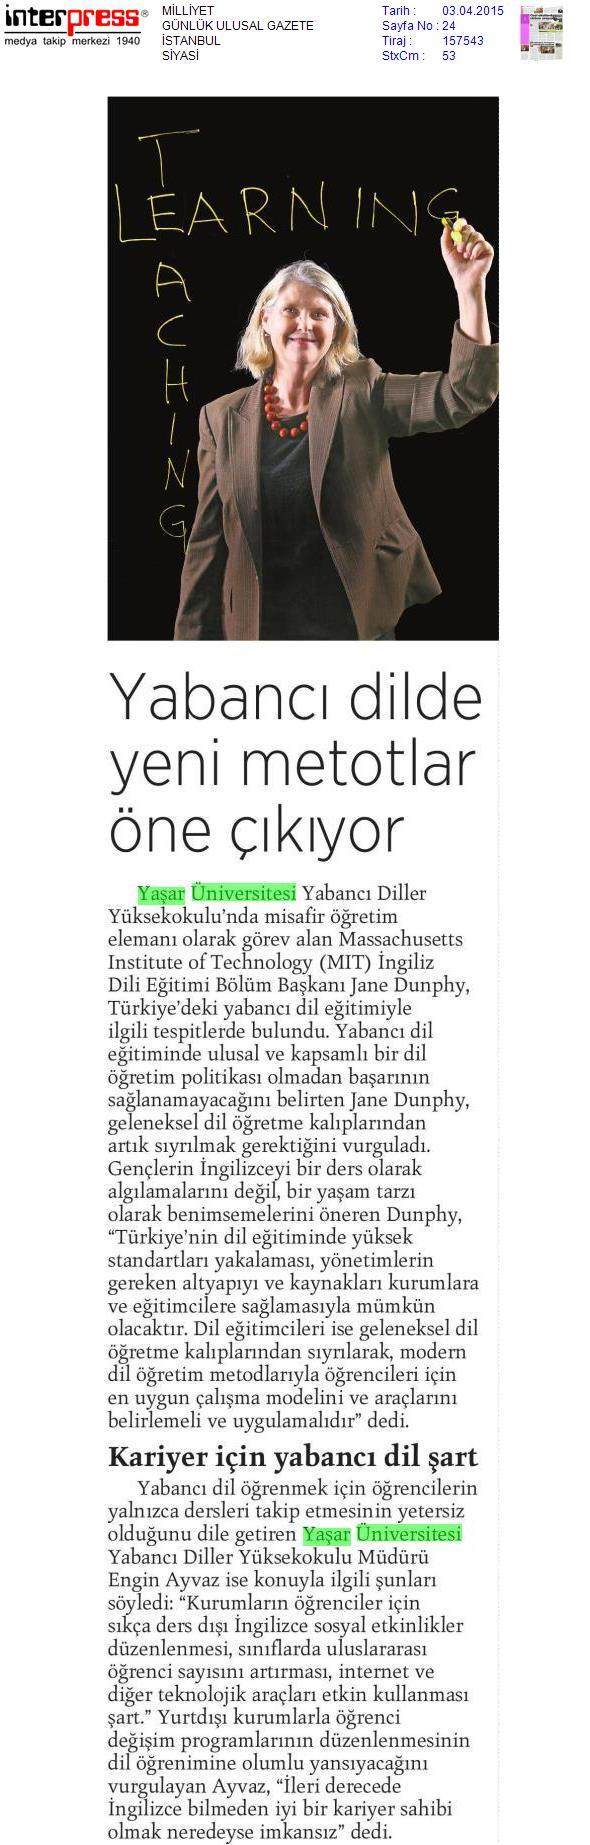 Today's newspaper & Jane Dunphy from Massachusetts Institute of Technology  #milliyet #mit #mitgsl @YasarUniv #fb http://t.co/8KKFxlUa3X